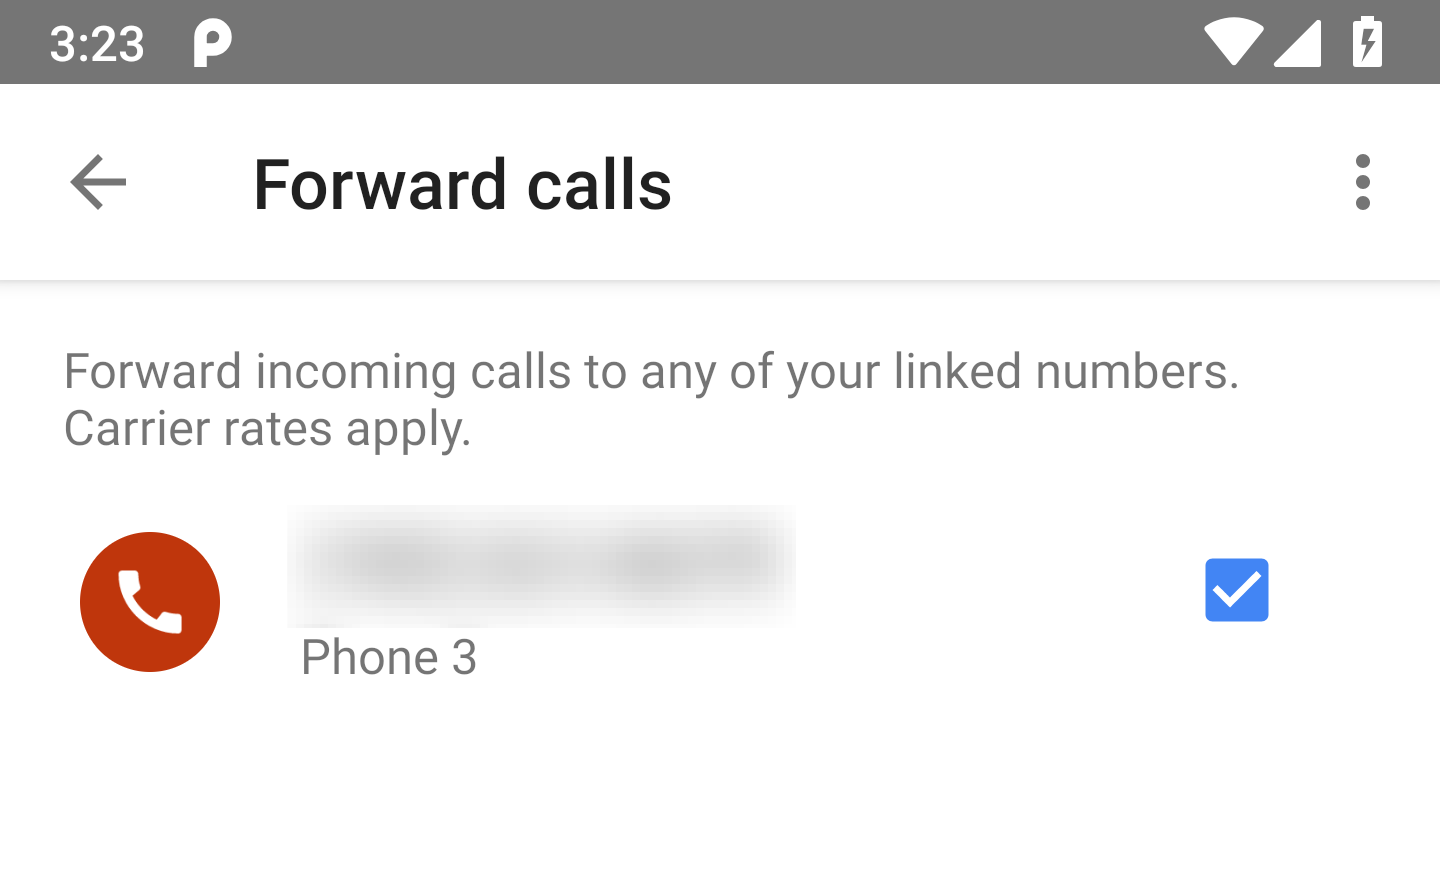 Google voice v59 prepares voicemail greetings to be recorded in app there used to be three commands listed but it seems conference calls have been removed from the list call recording and switching to a different phone are m4hsunfo